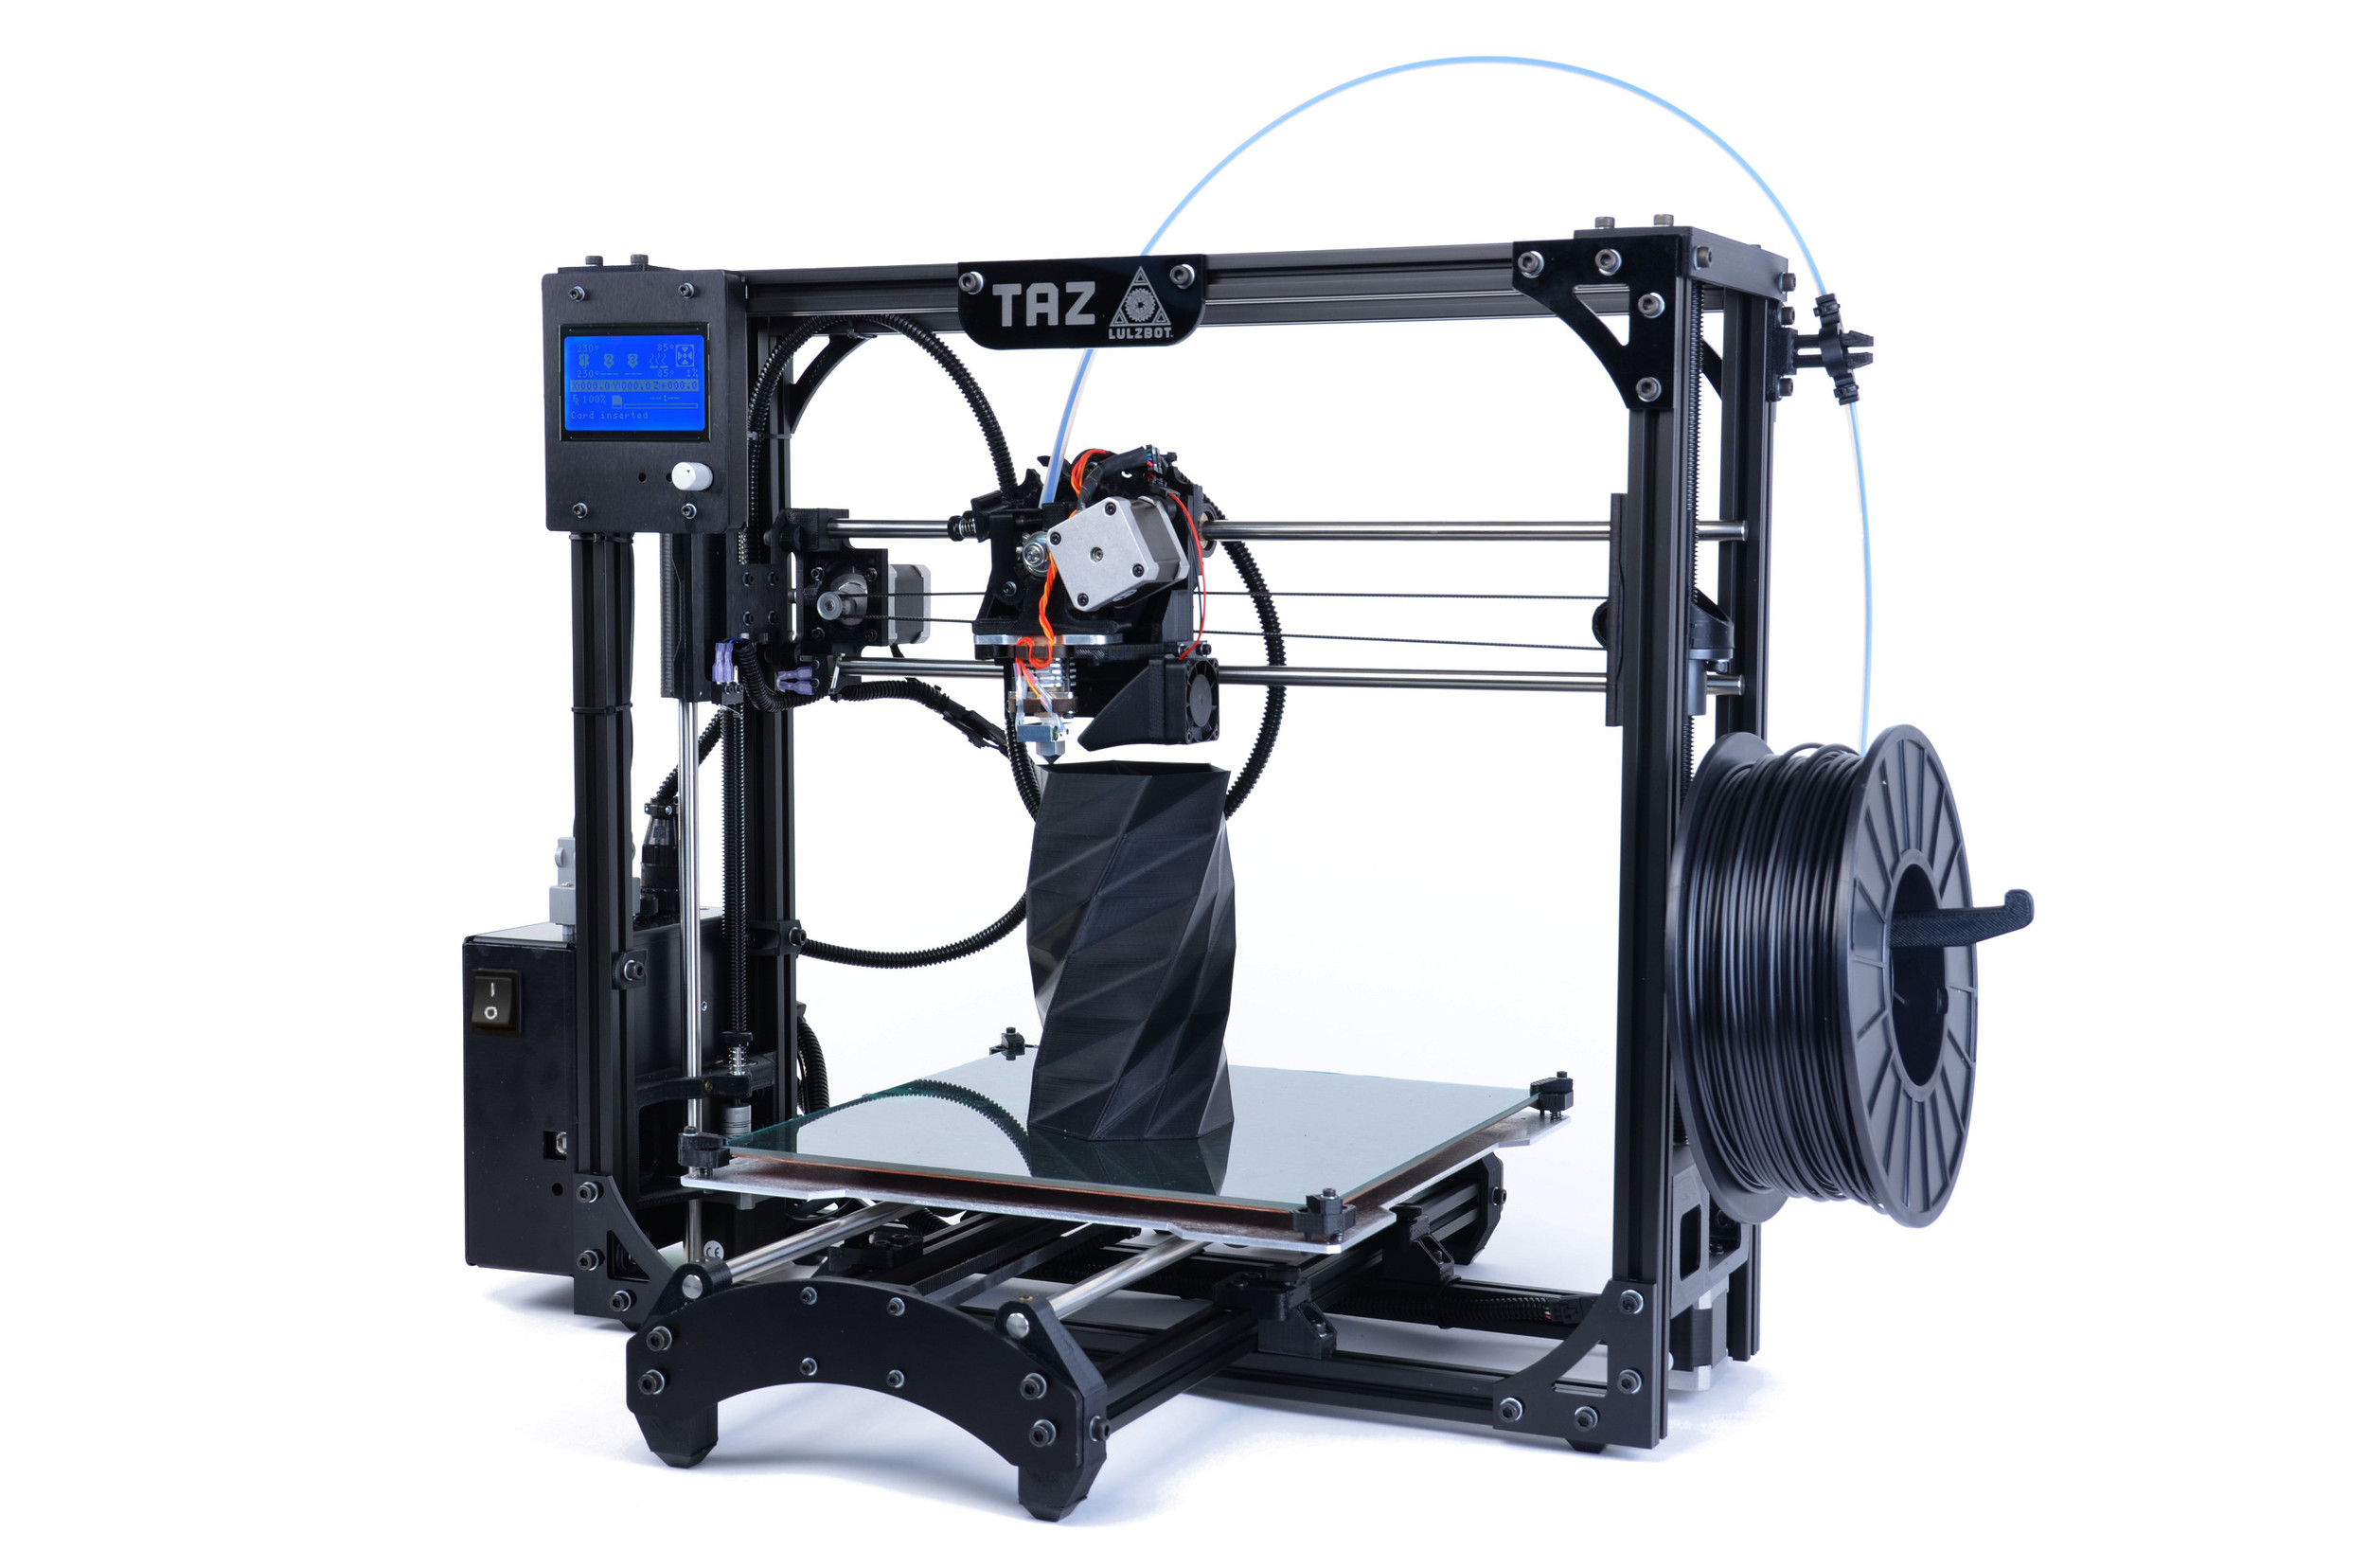 Aleph Objects Releases the LulzBot TAZ 4 3D Printer